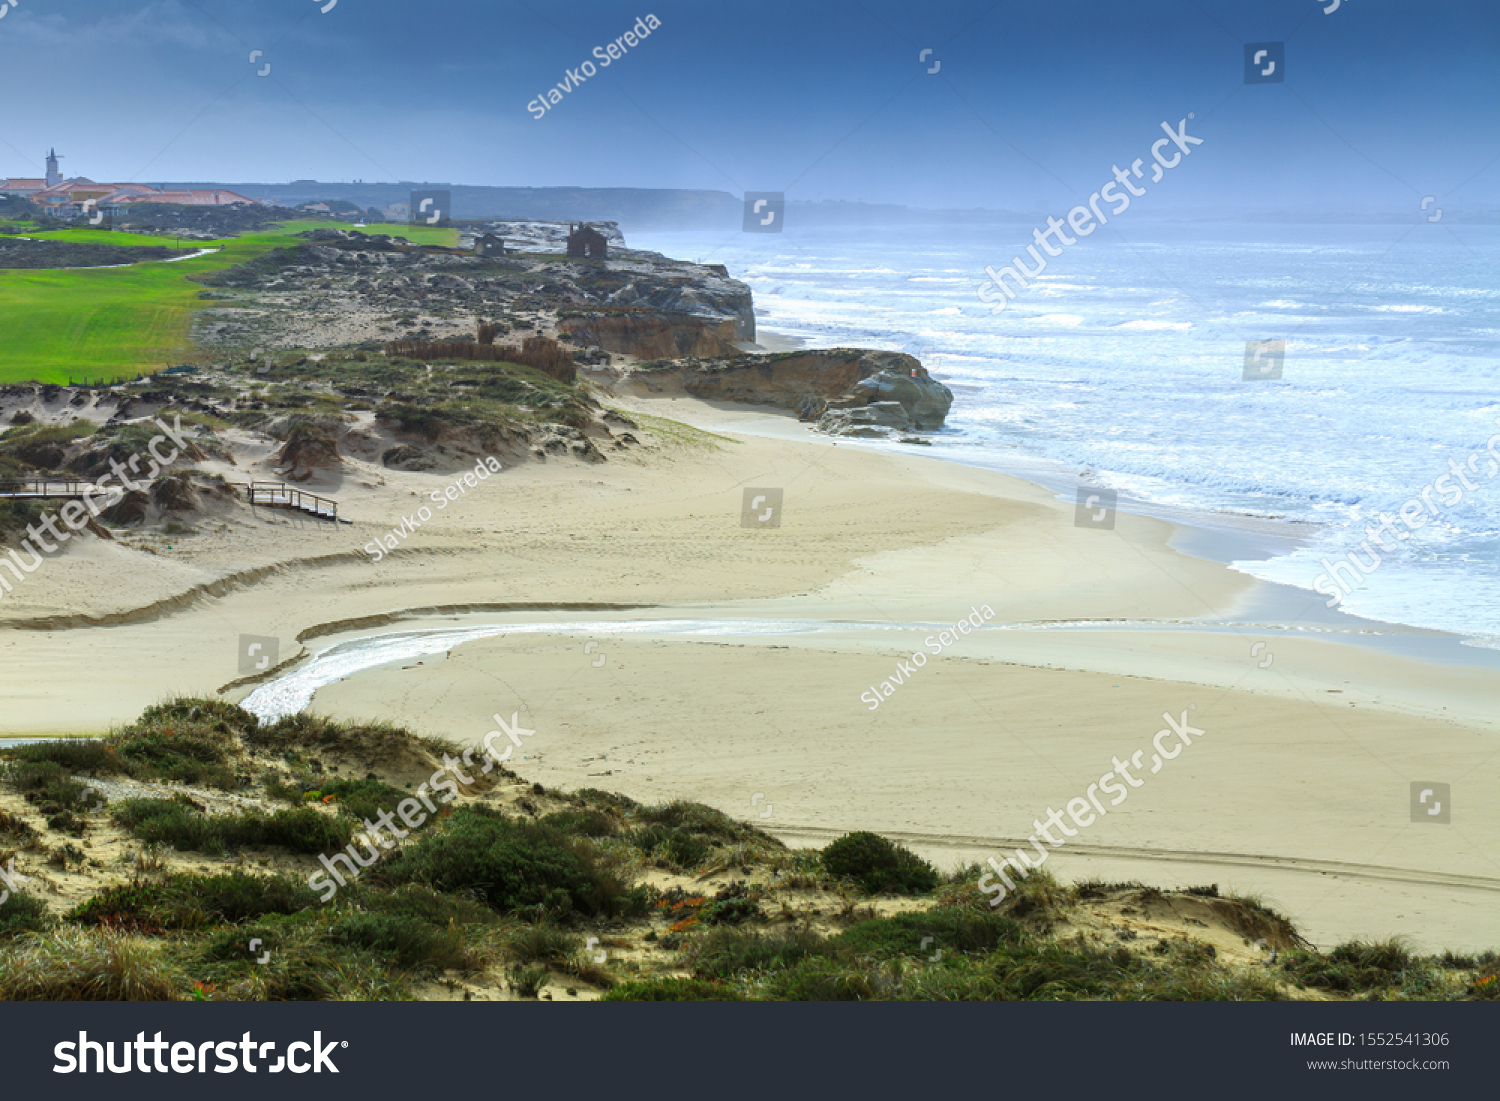 A ocean waves on the beautiful sand beach in at the cloudy stormy day. Breathtaking romantic seascape of ocean coastline. Praia d'el rey near Obidos Lagoon. Portugal. #1552541306